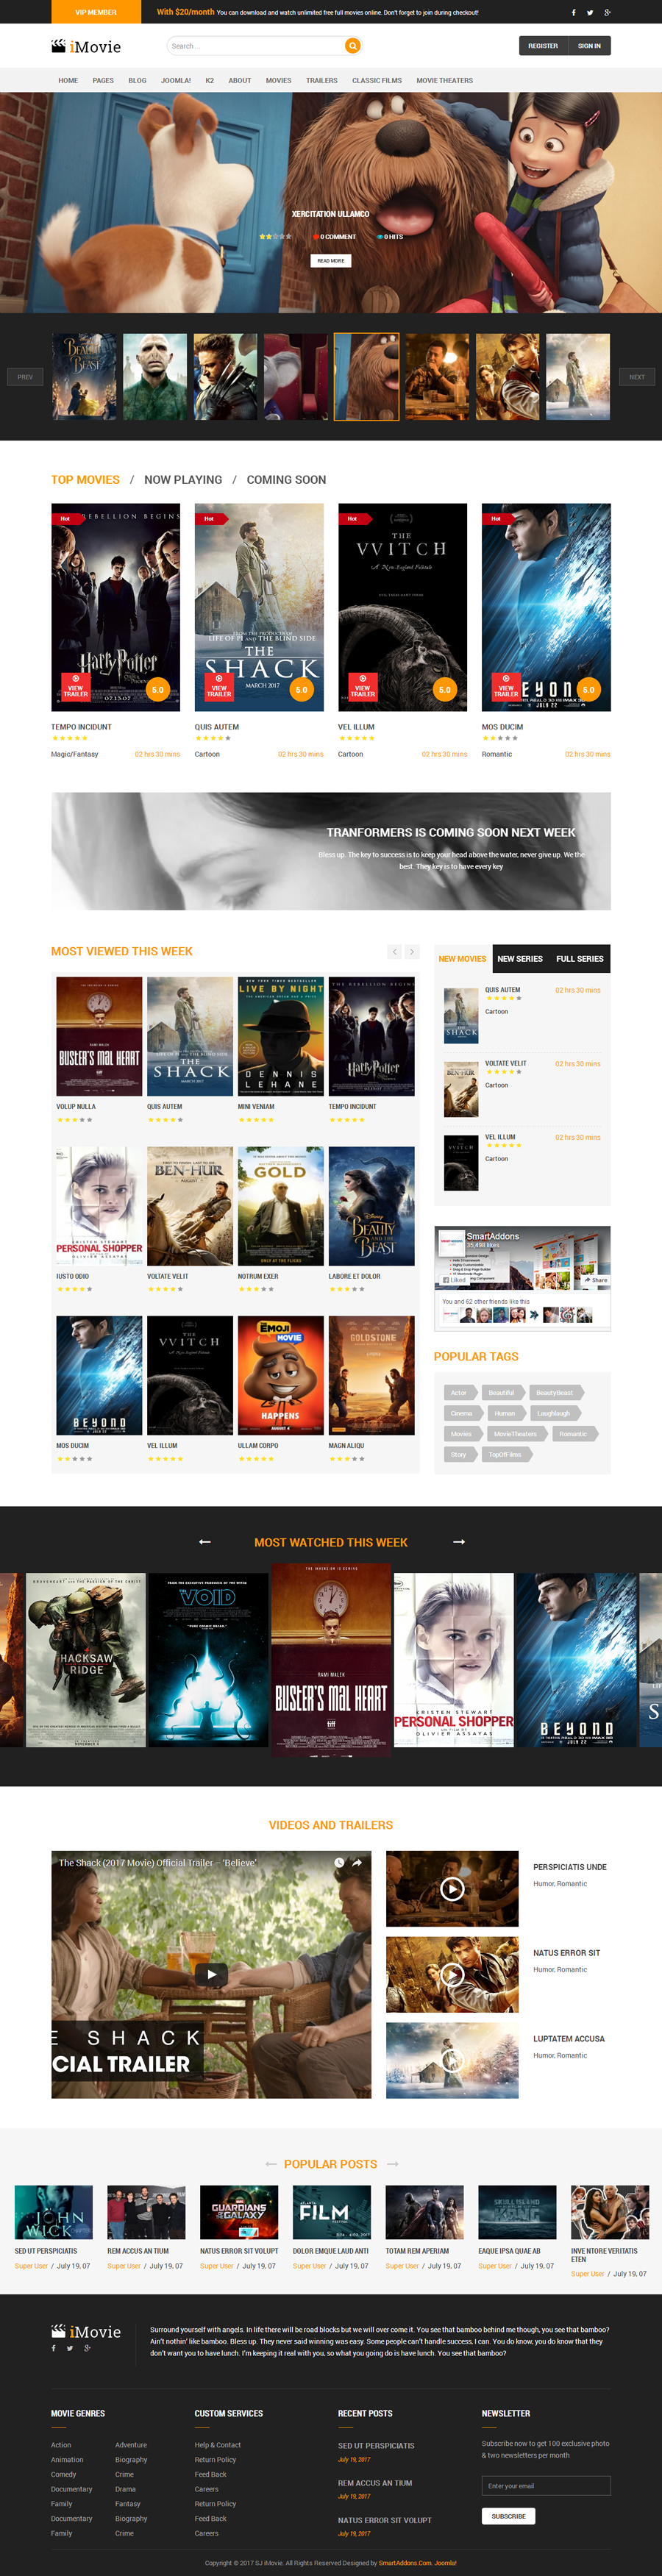 Multipurpose Movie News Joomla 37 Template Sj Imovie